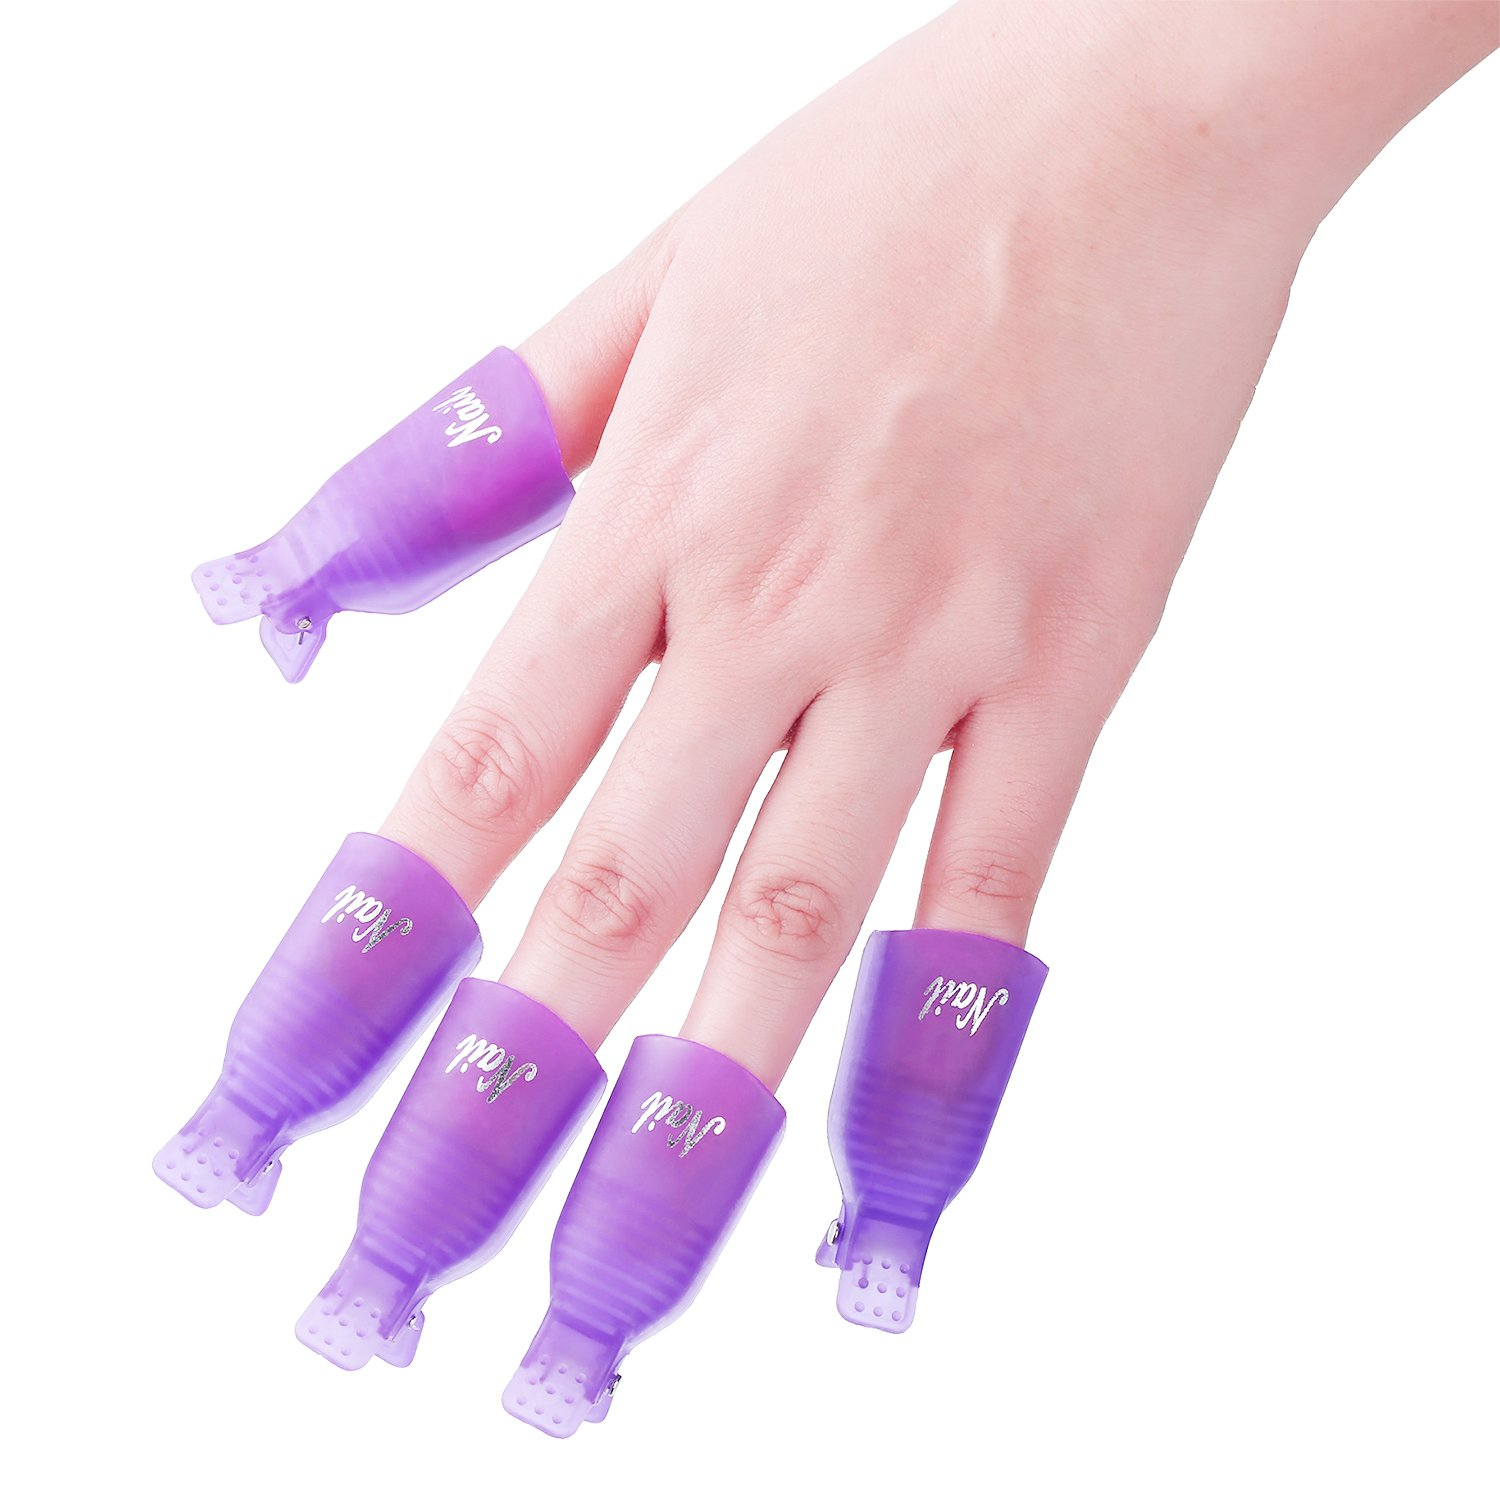 eBoot Nail Cap Clips UV Gel Polish Remover Wrap 10 Pack with 420 Pack Nail Wipe Cotton Pads (Purple)